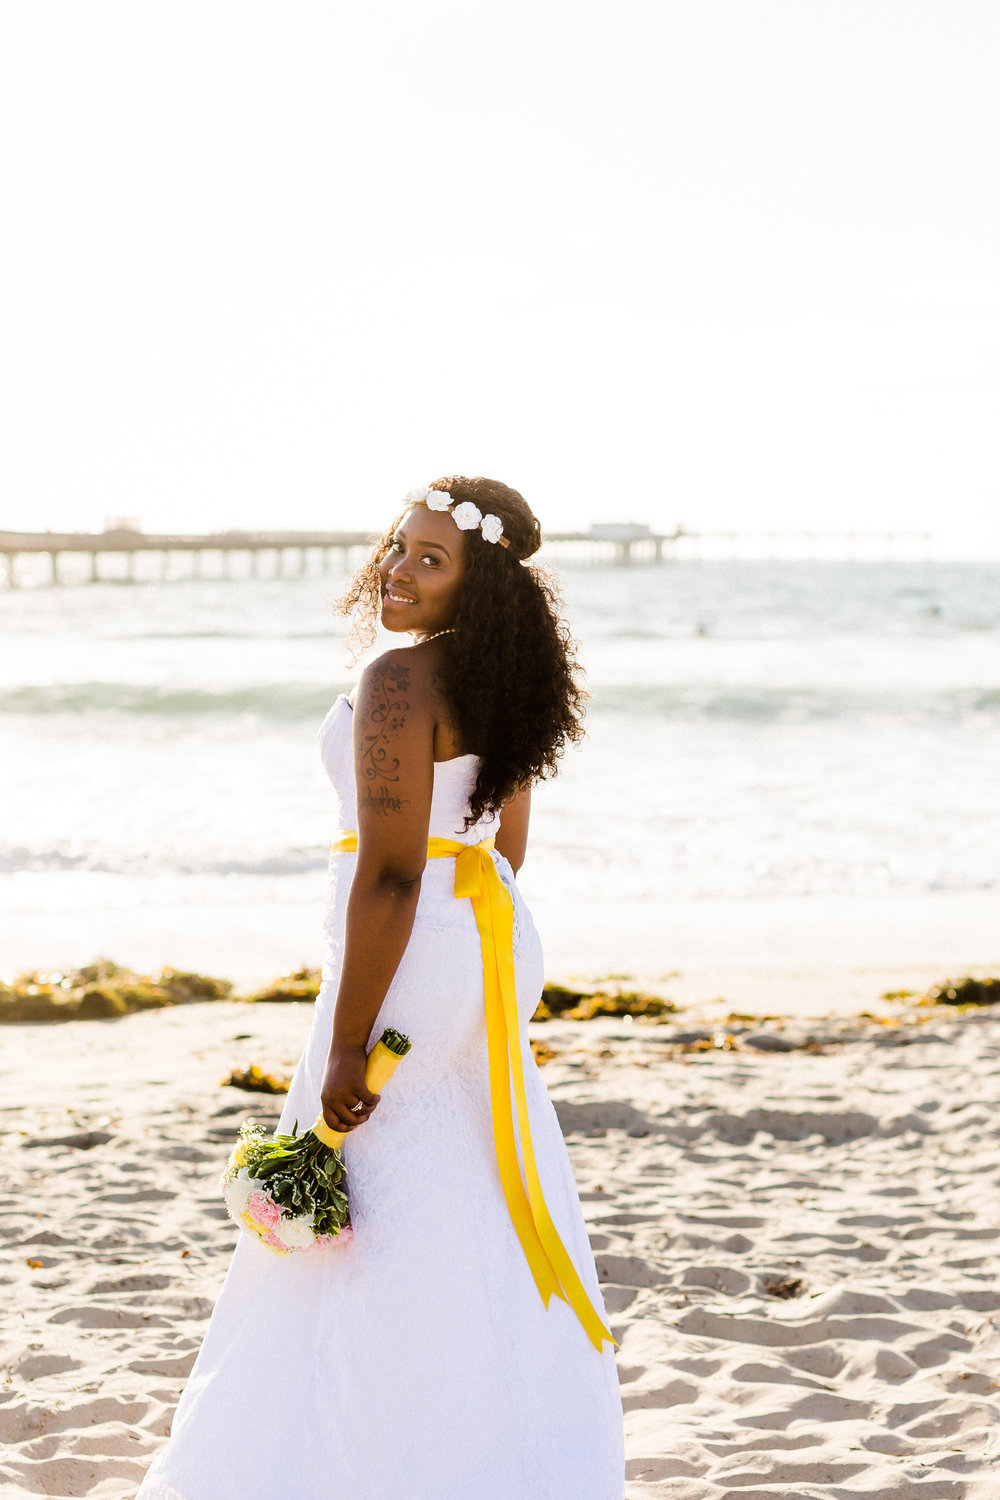 Crystal_Sabrina_Ocean_Beach_Wed_Session_100.jpg